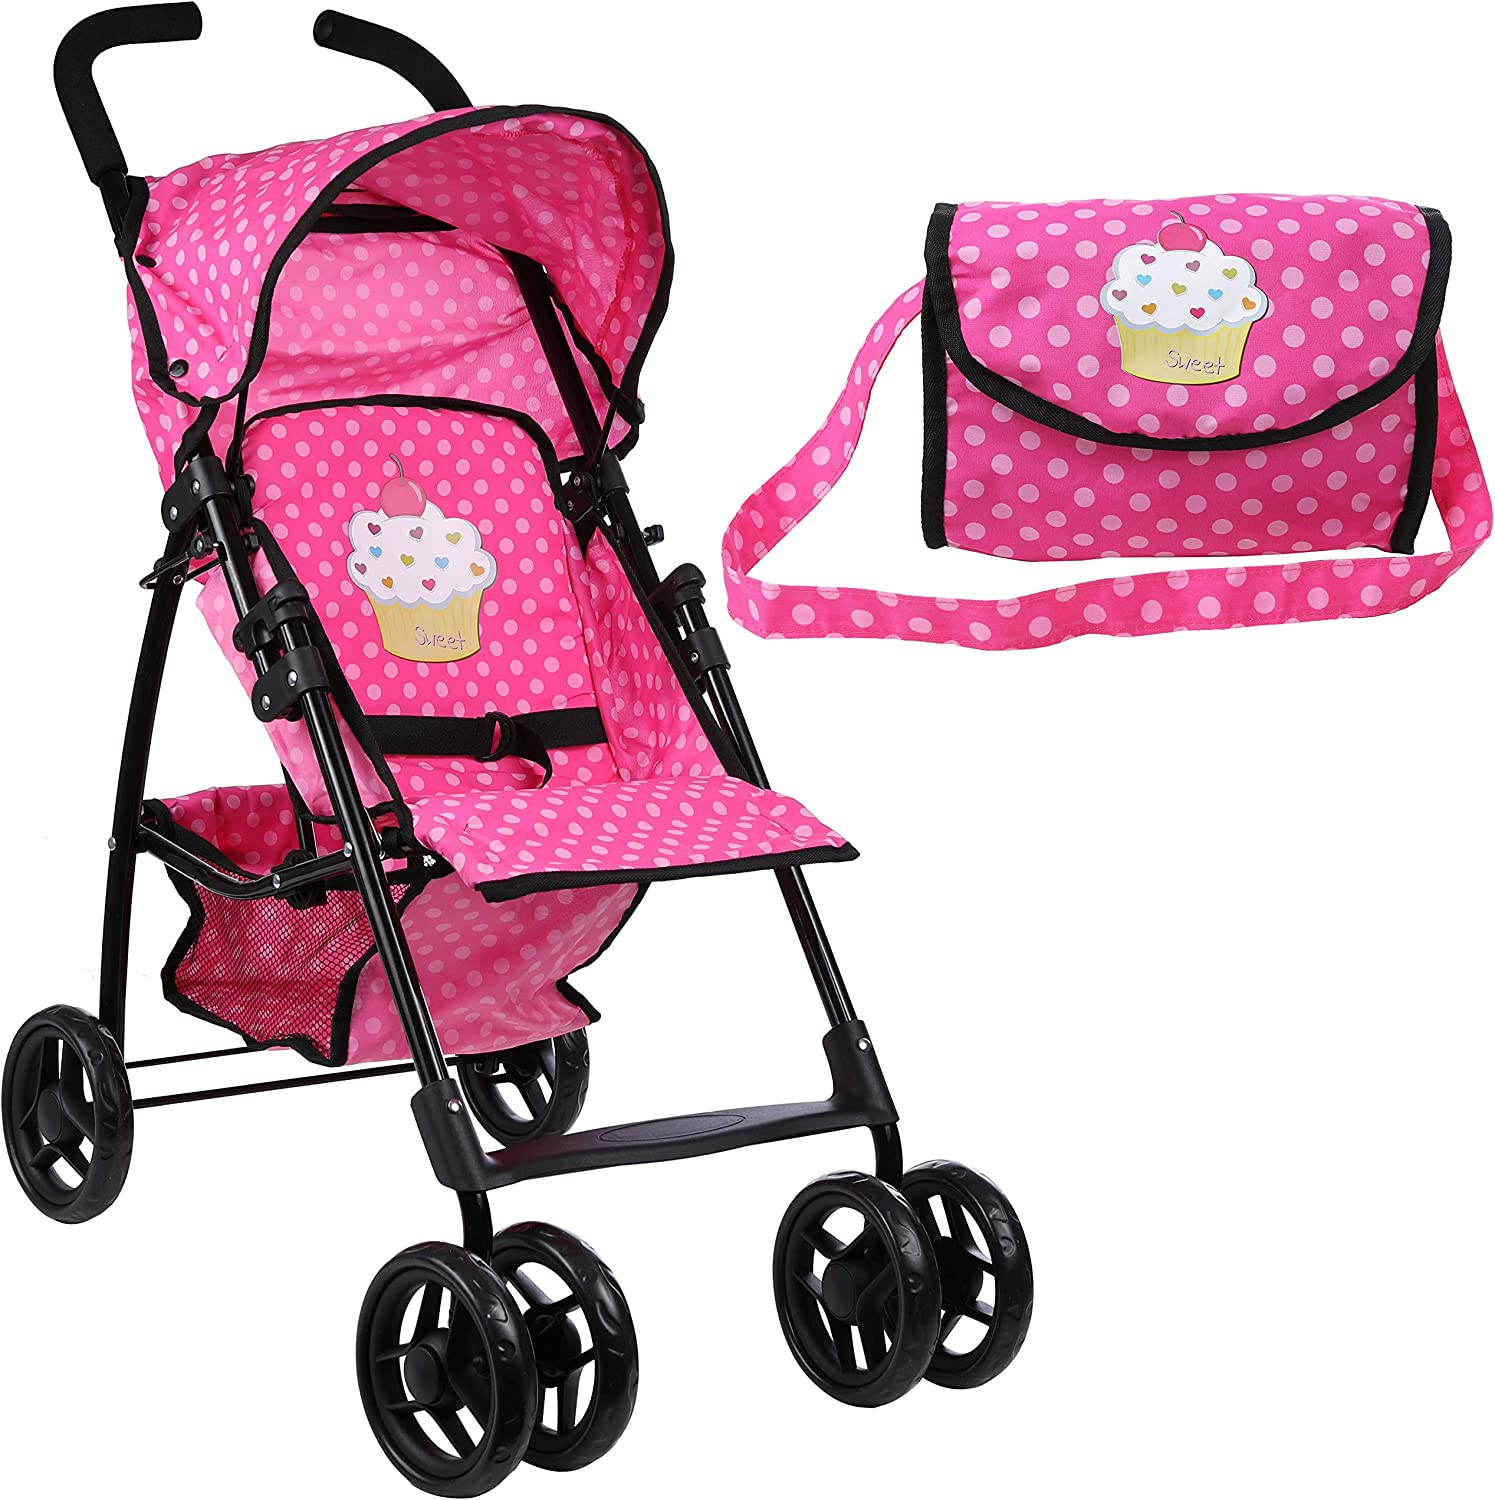 Mommy & Me Doll Stroller Foldable Umbrella Doll Stroller with Basket, Swiveling Wheels and Free Carriage Bag 9351A Cupcake